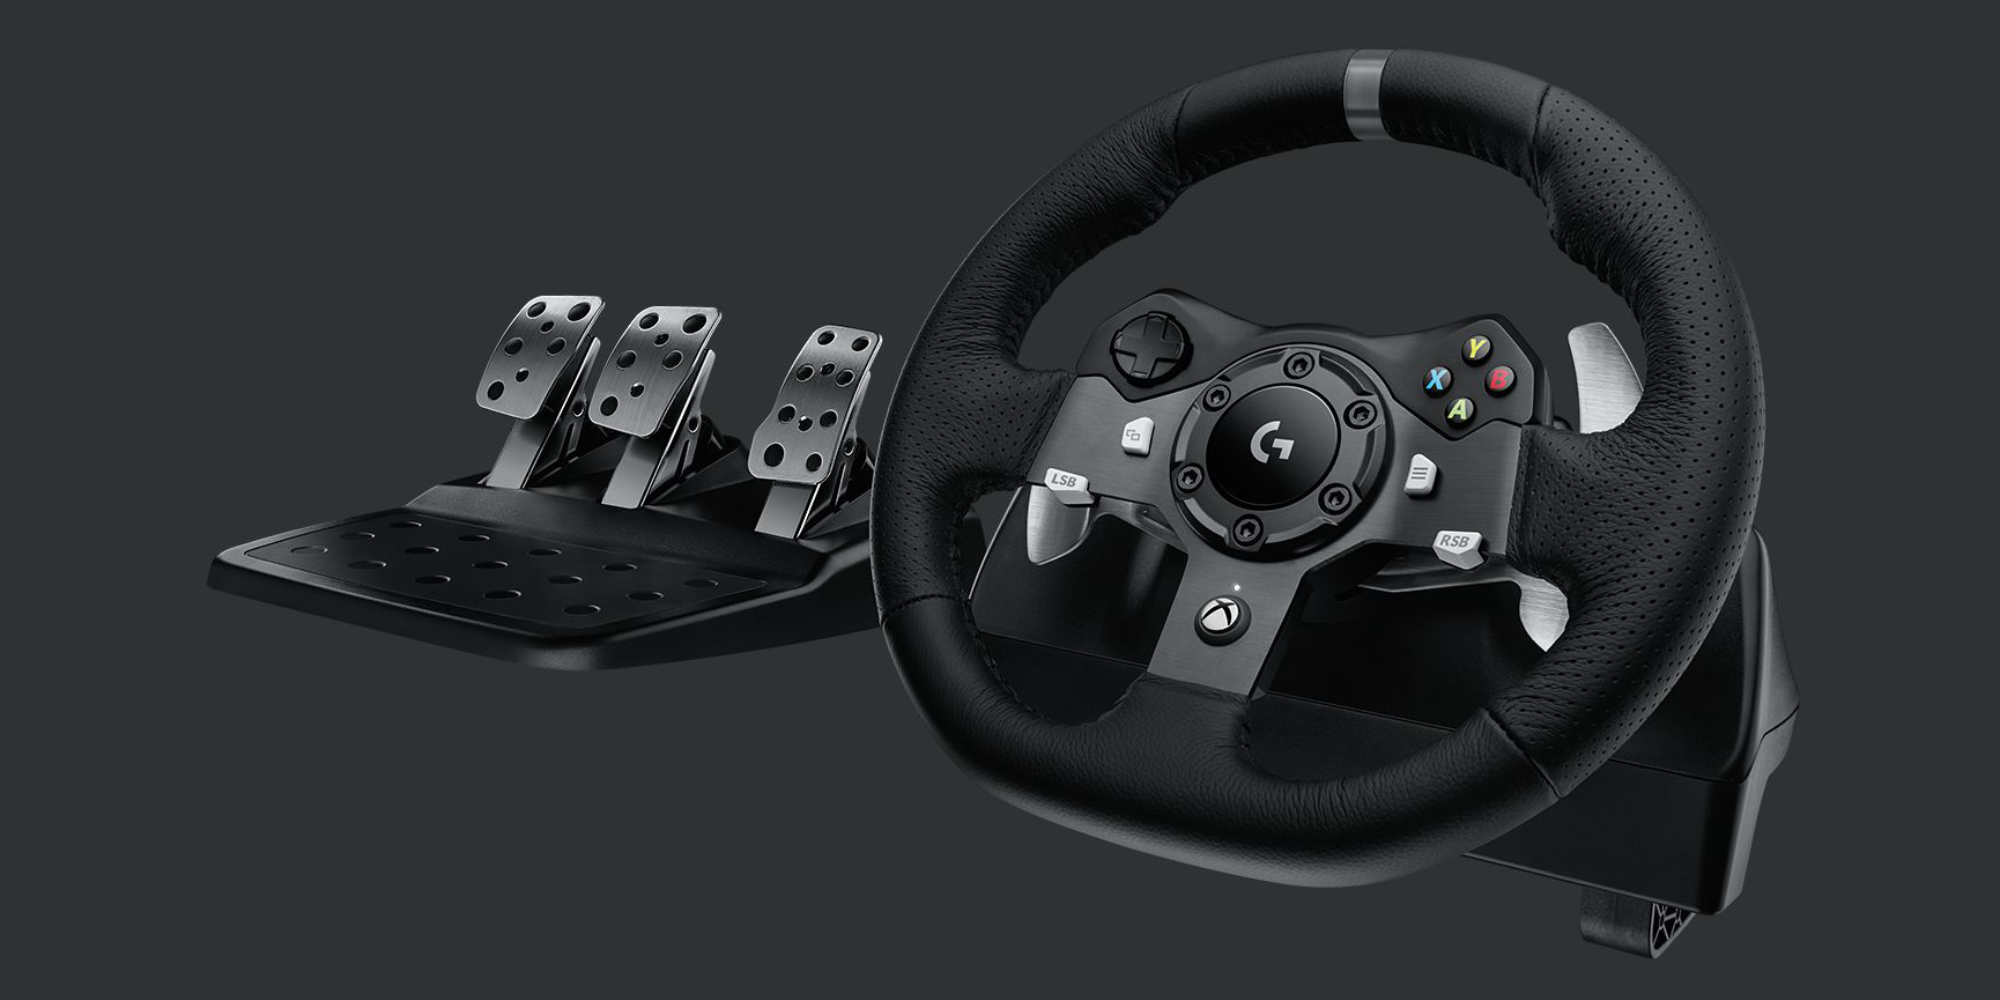 Step into the driver's seat with Logitech's G920 Xbox One Racing Wheel: $200 (Reg. $245+)